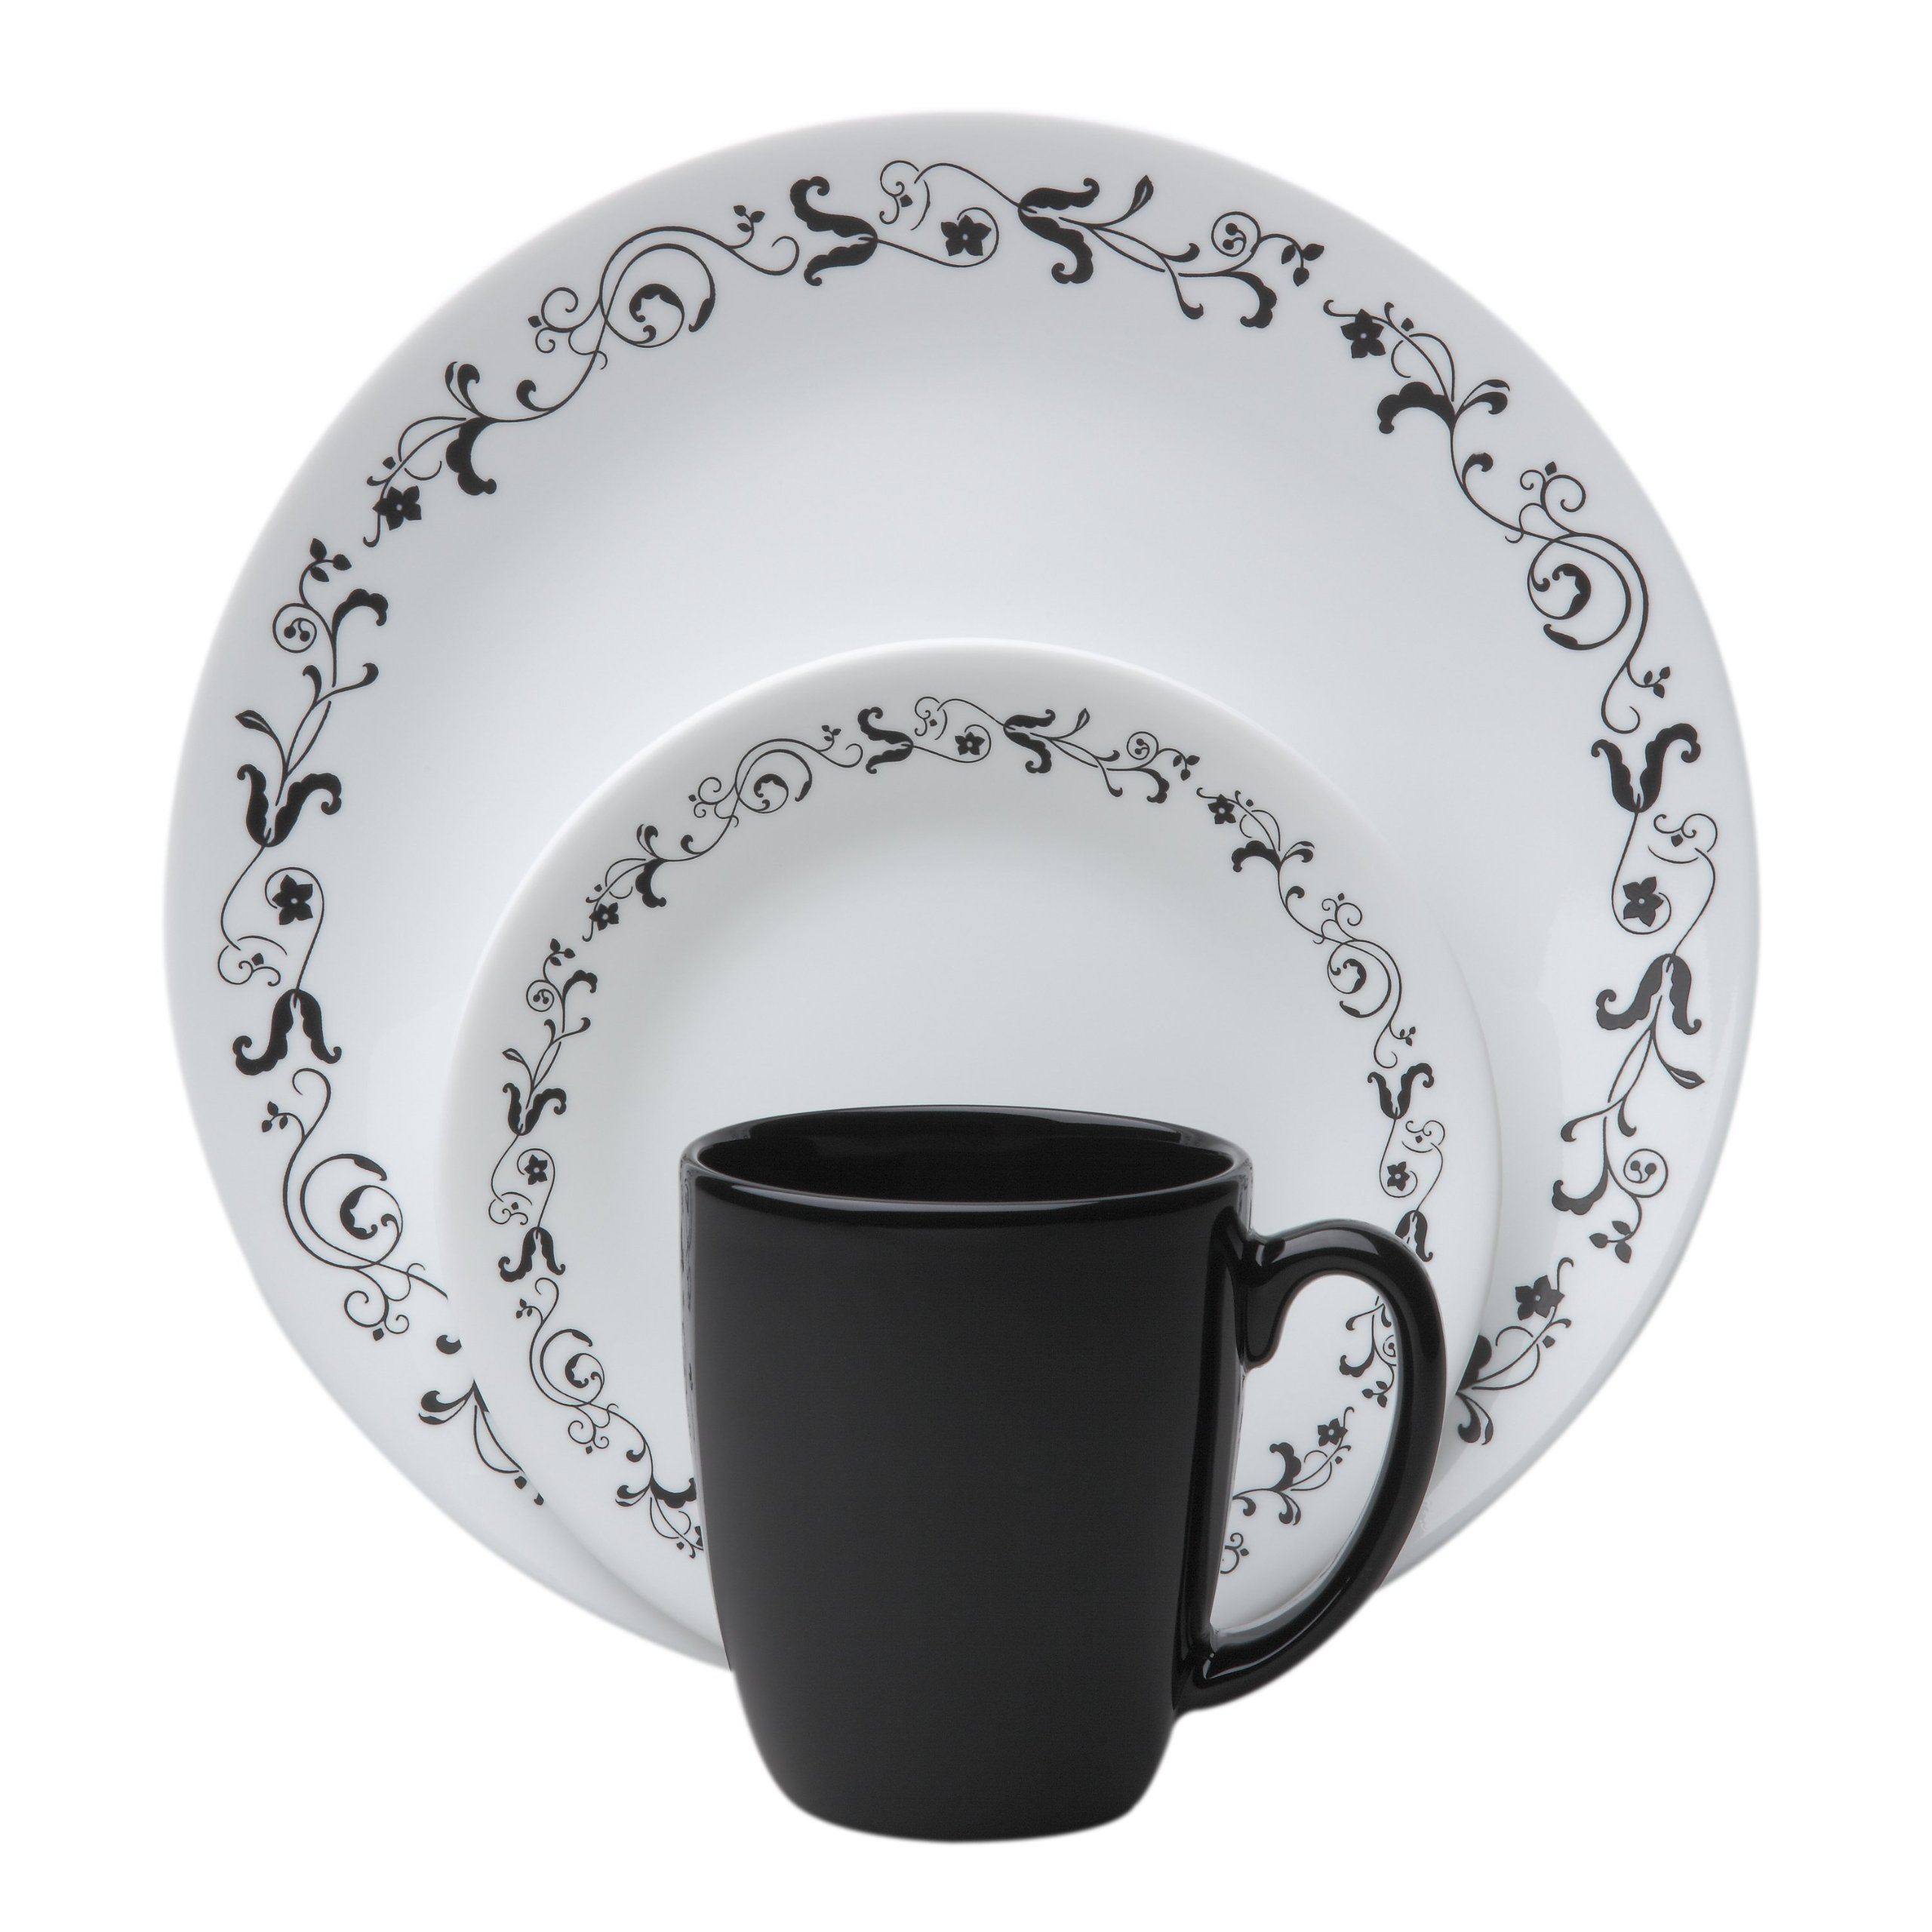 Corelle Garden Getaway Dinnerware Set (16-Piece, Service for 4)